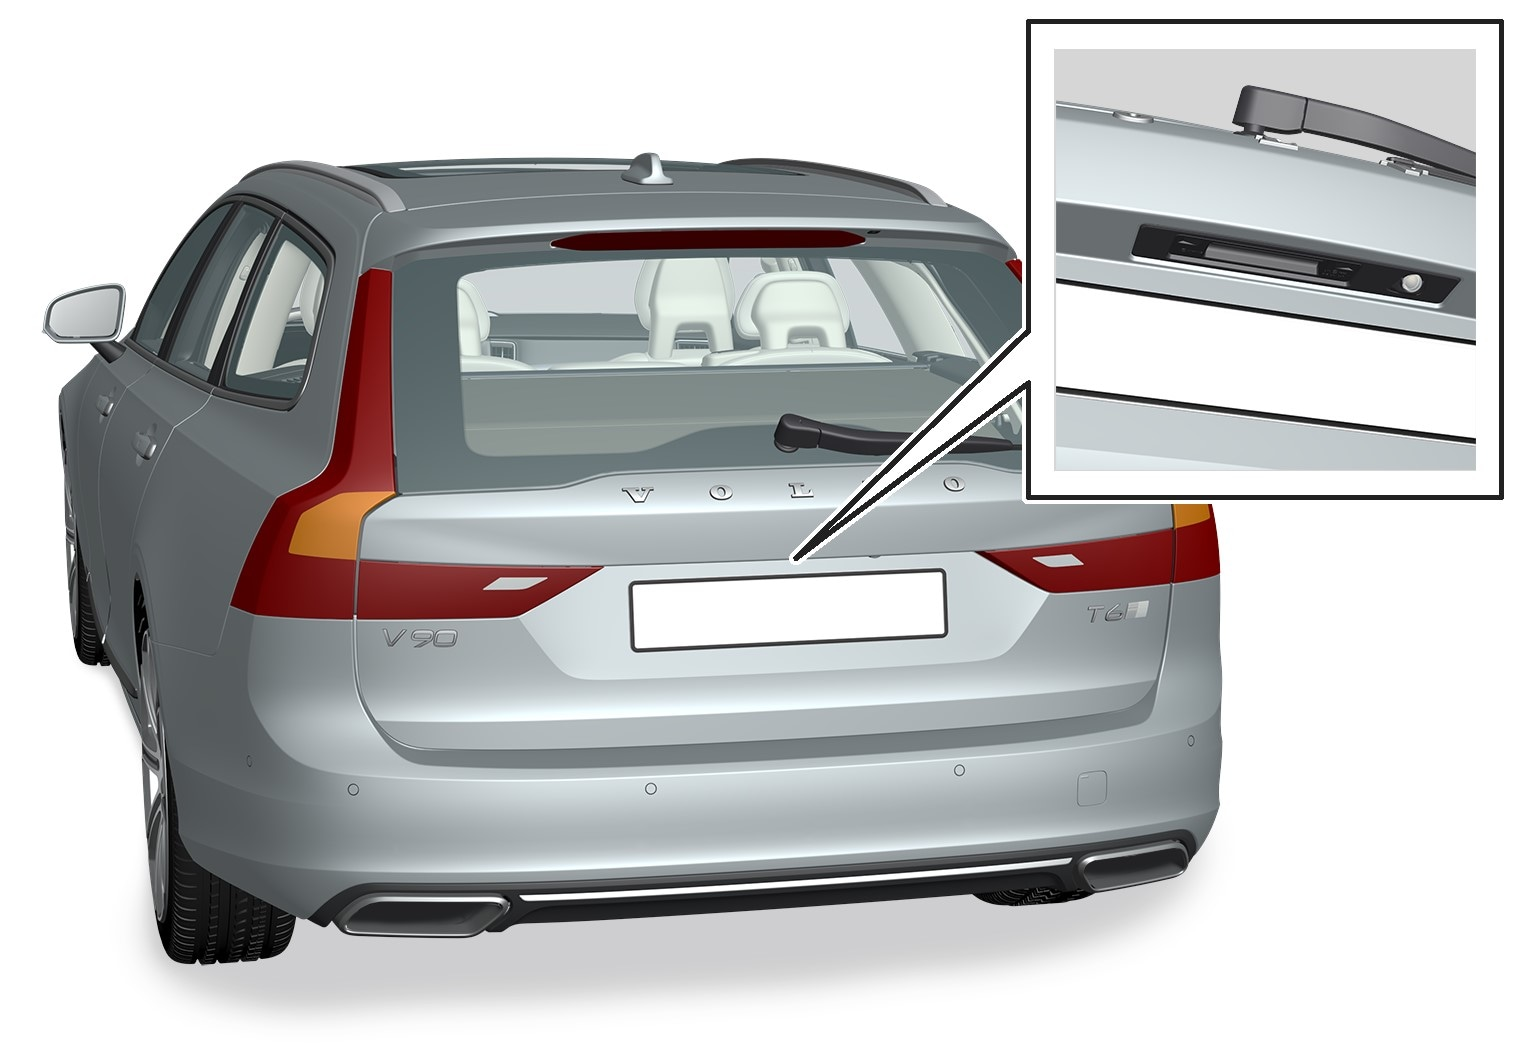 16w17 - SPA - V90 - Tailgate pointing out handle